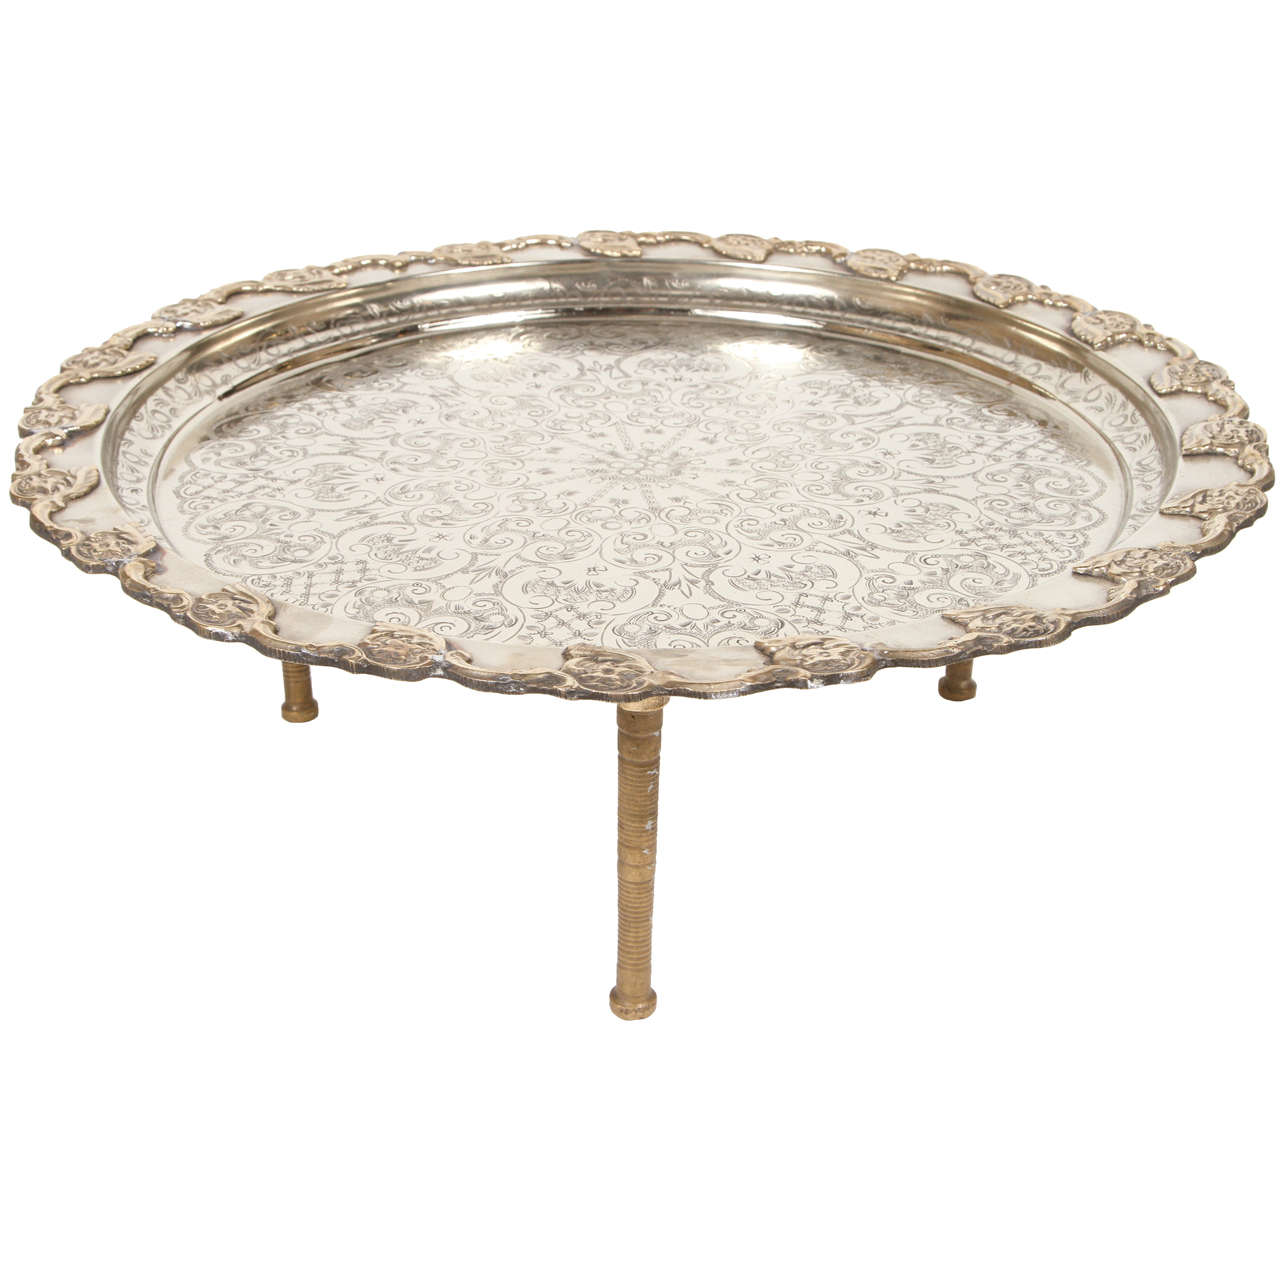 Moroccan Handcrafted Silver Round Tray 1